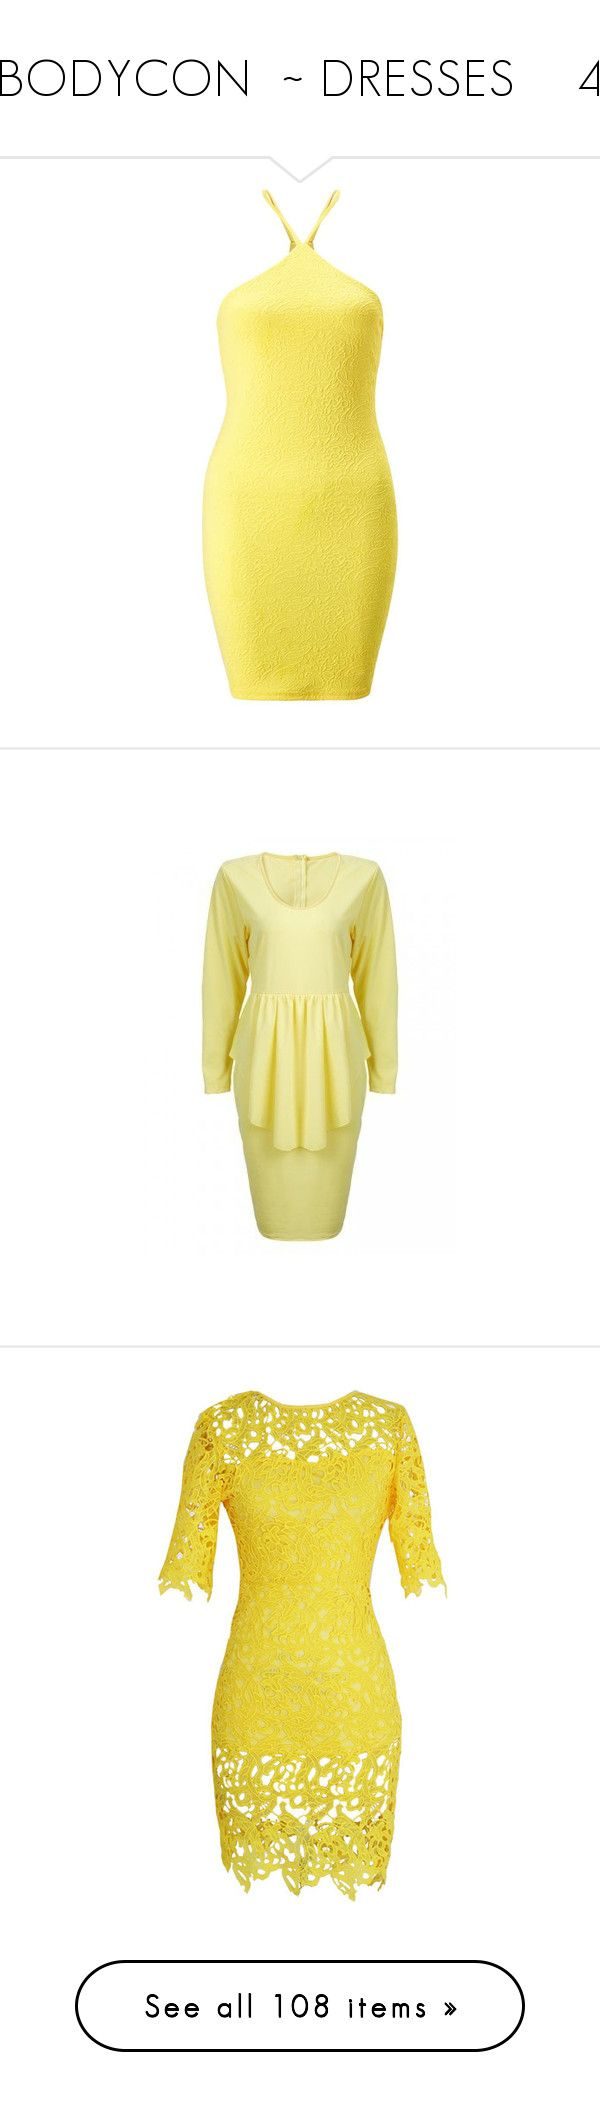 """""""BODYCON  ~ DRESSES    4"""" by kuropirate on Polyvore featuring dresses, petite, yellow, yellow bodycon dress, miss selfridge dress, petite bodycon dresses, yellow body con dress, body con dress, sexy long sleeve dresses and sexy dresses"""